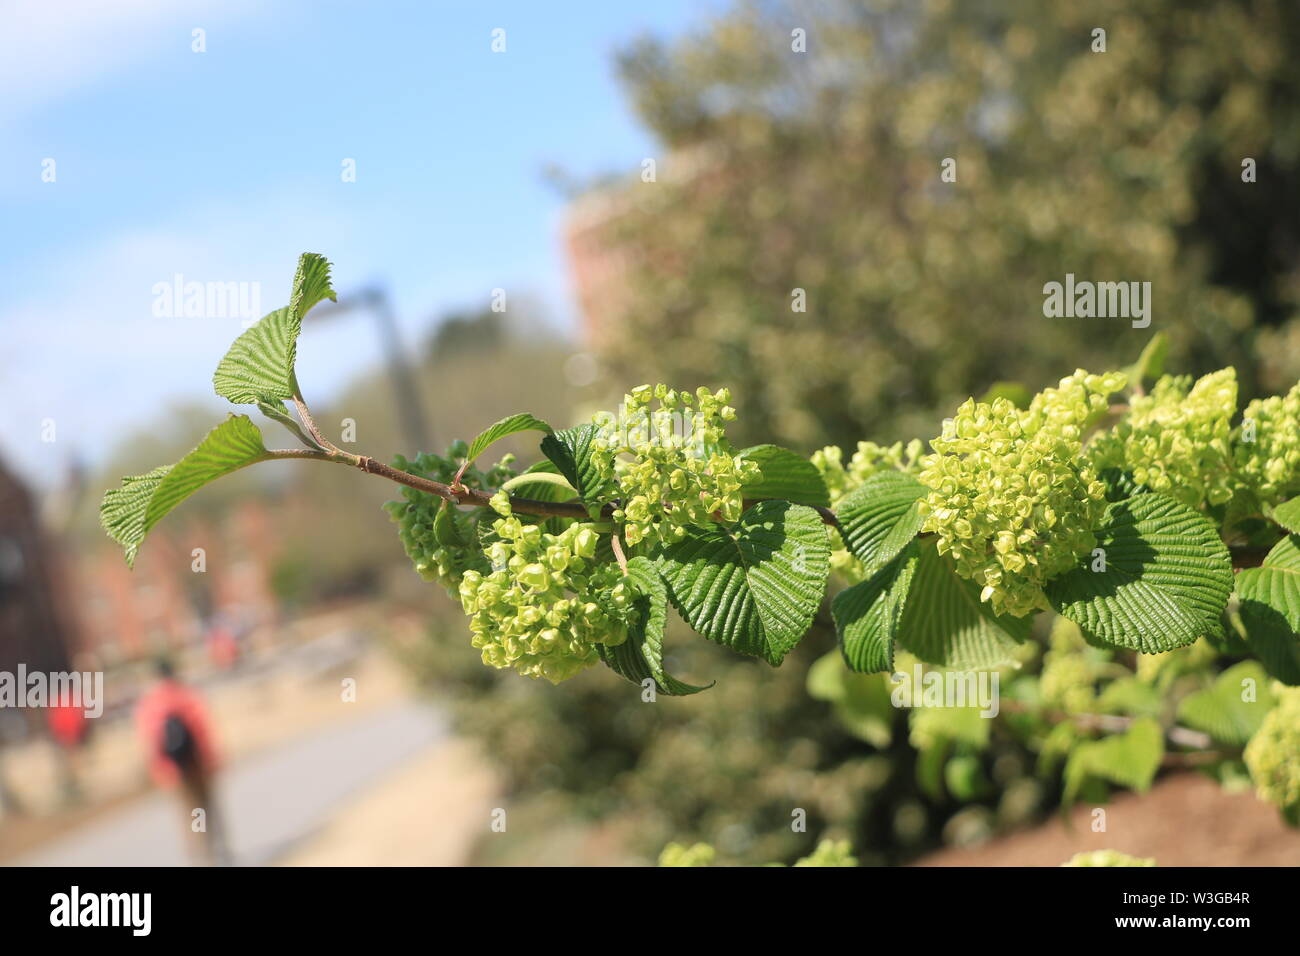 This is a photo of a flowering bush. There are two students in the background walking to class. Stock Photo